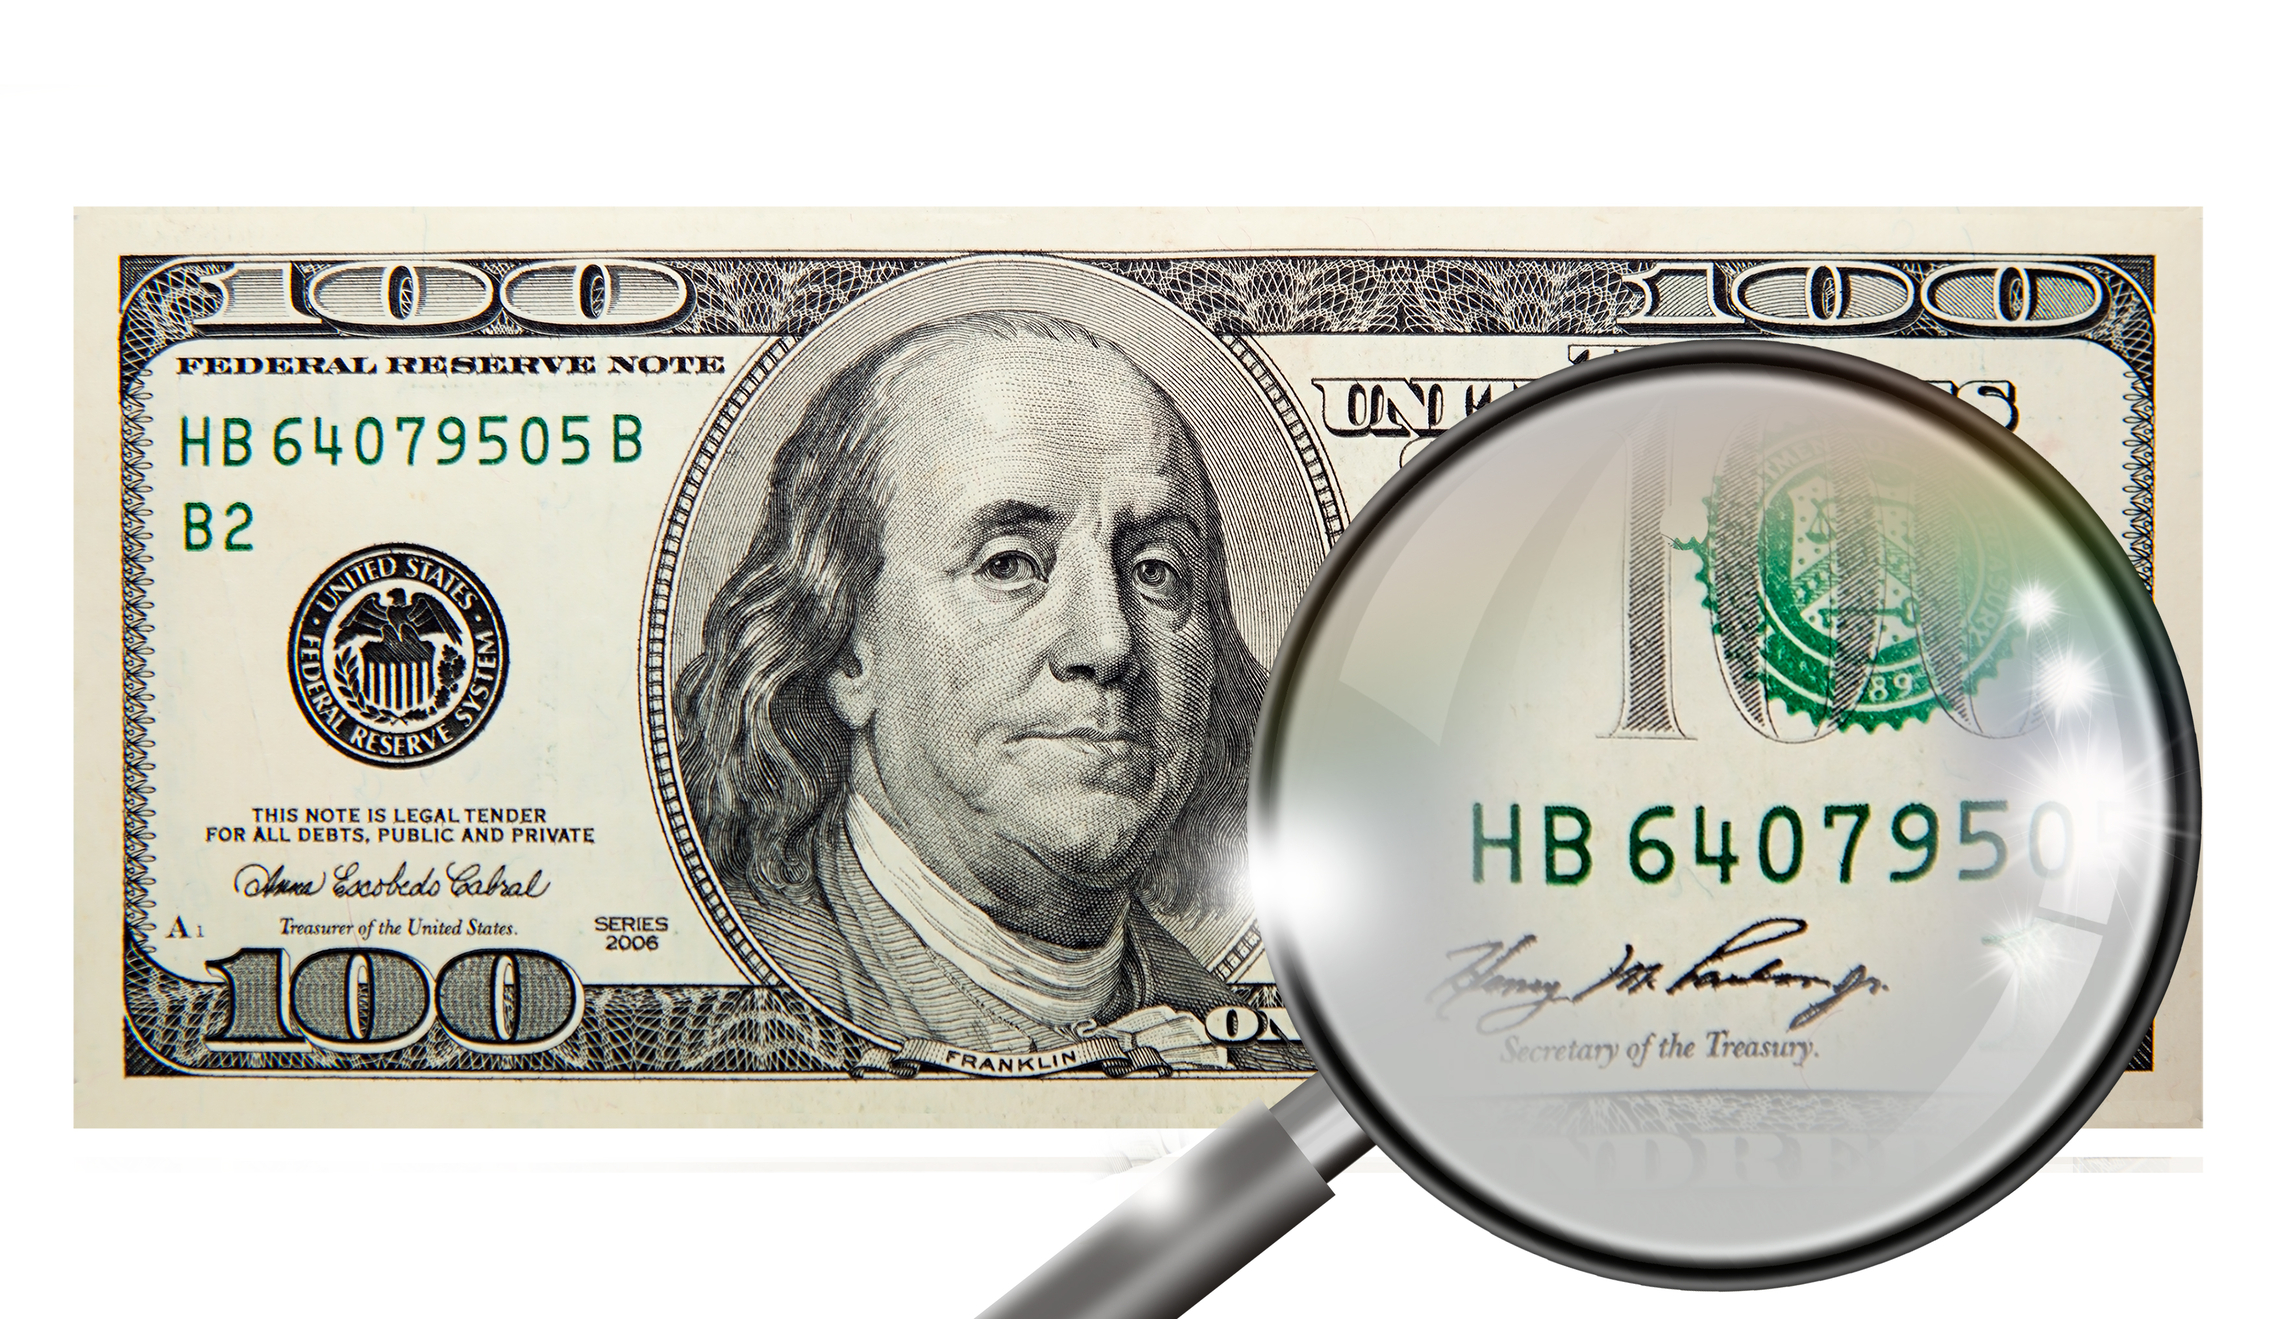 Counterfeit money continues to plague local businesses